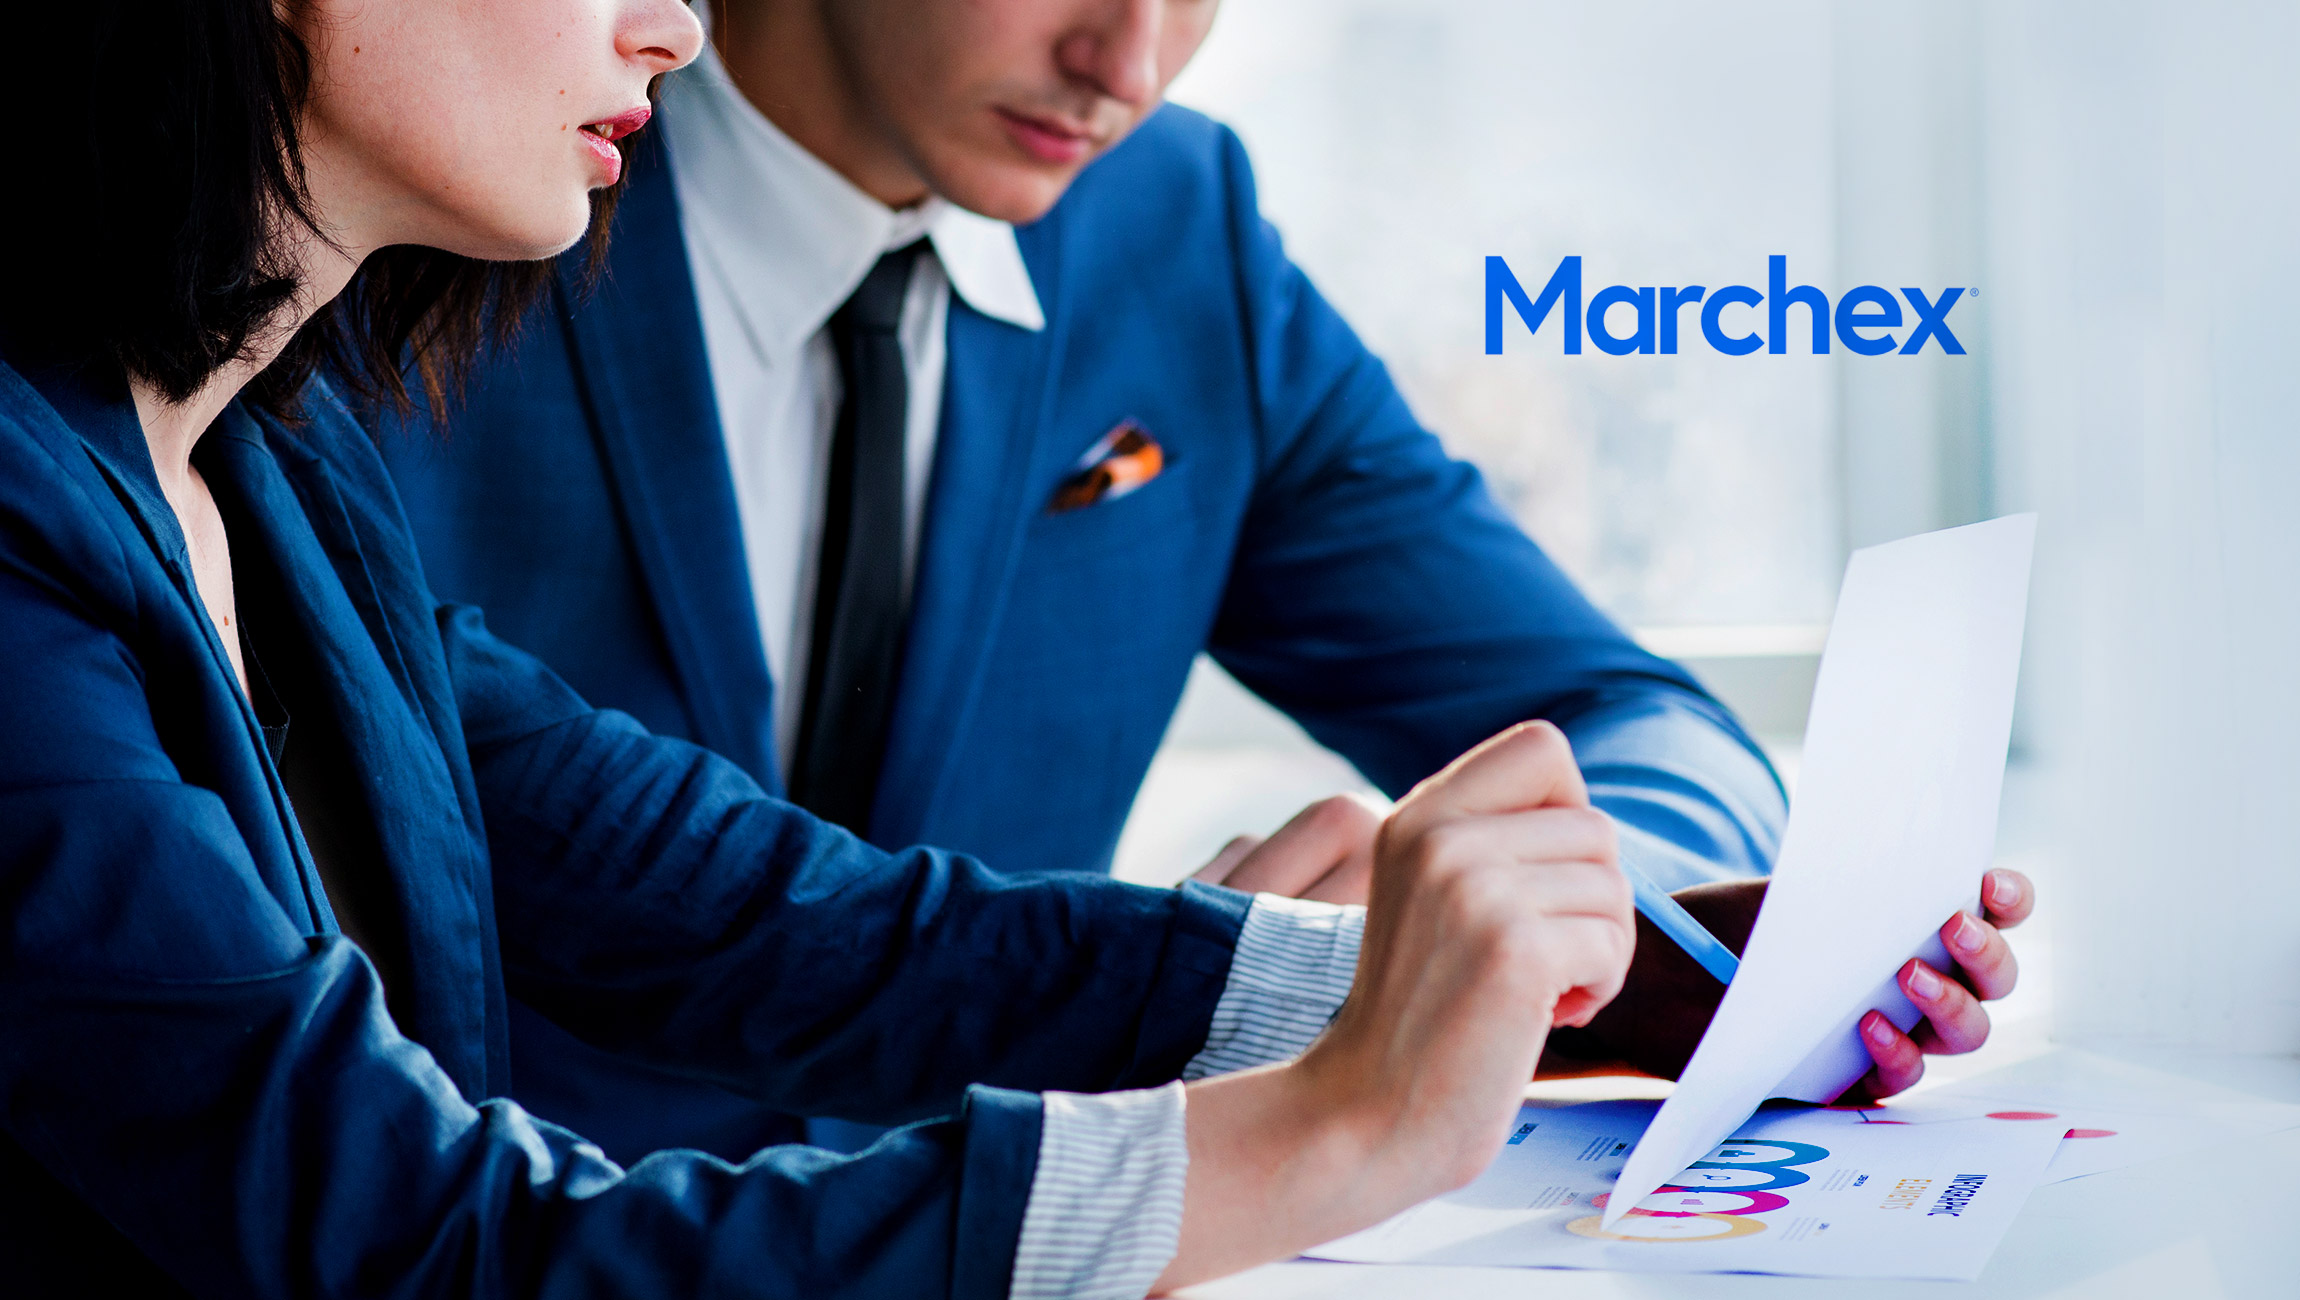 Marchex Releases Conversational AI Technology Built to Predict Customer Intent, Create Personalized Sales Experiences and Improve Sales Outcomes